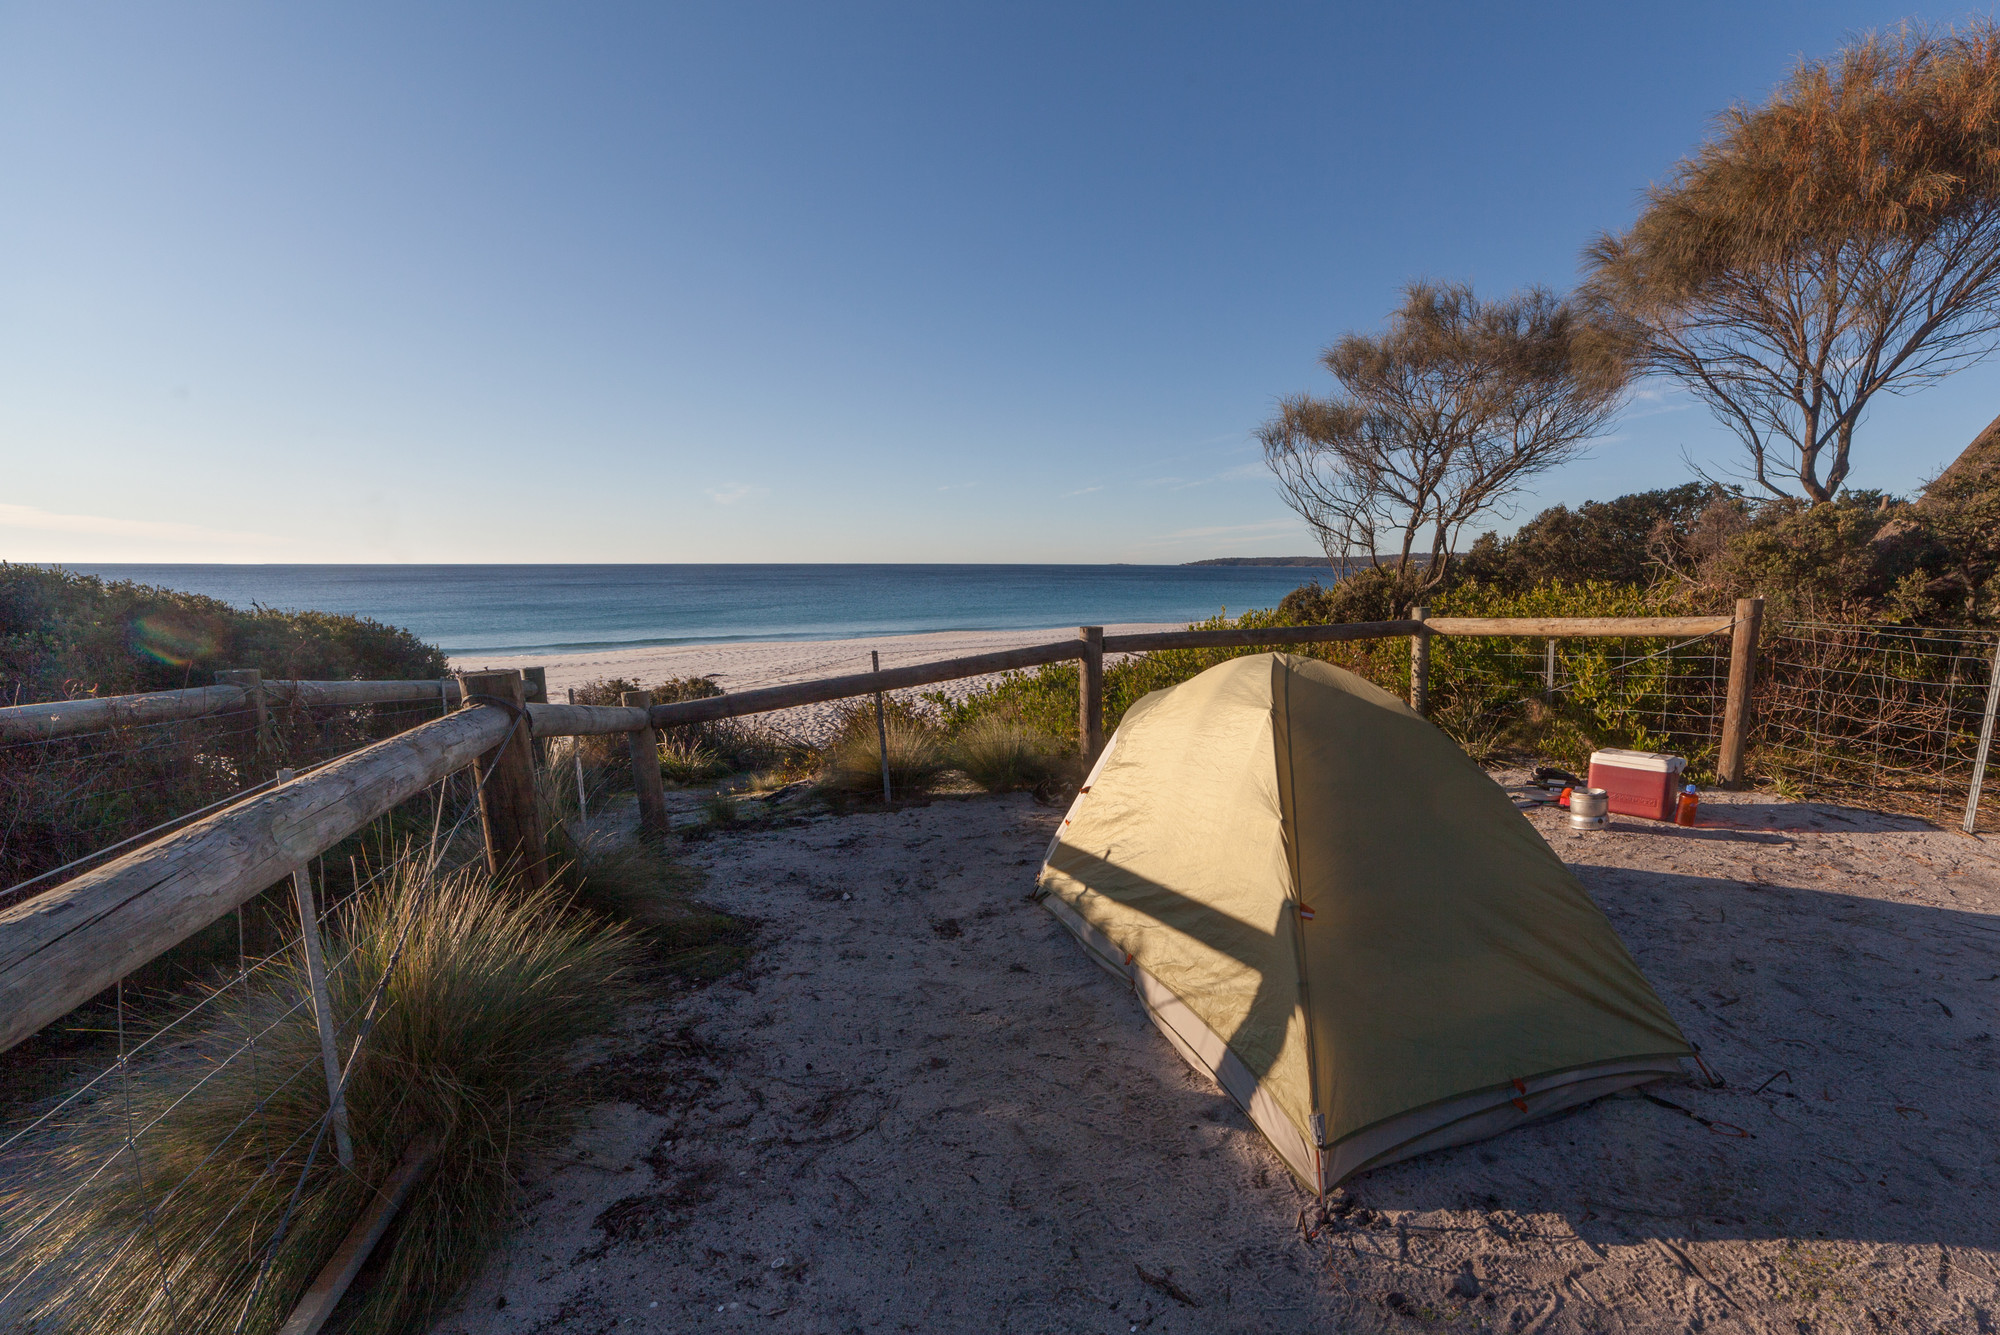 Tent overlooking beach, Bay of Fires Conservation Area